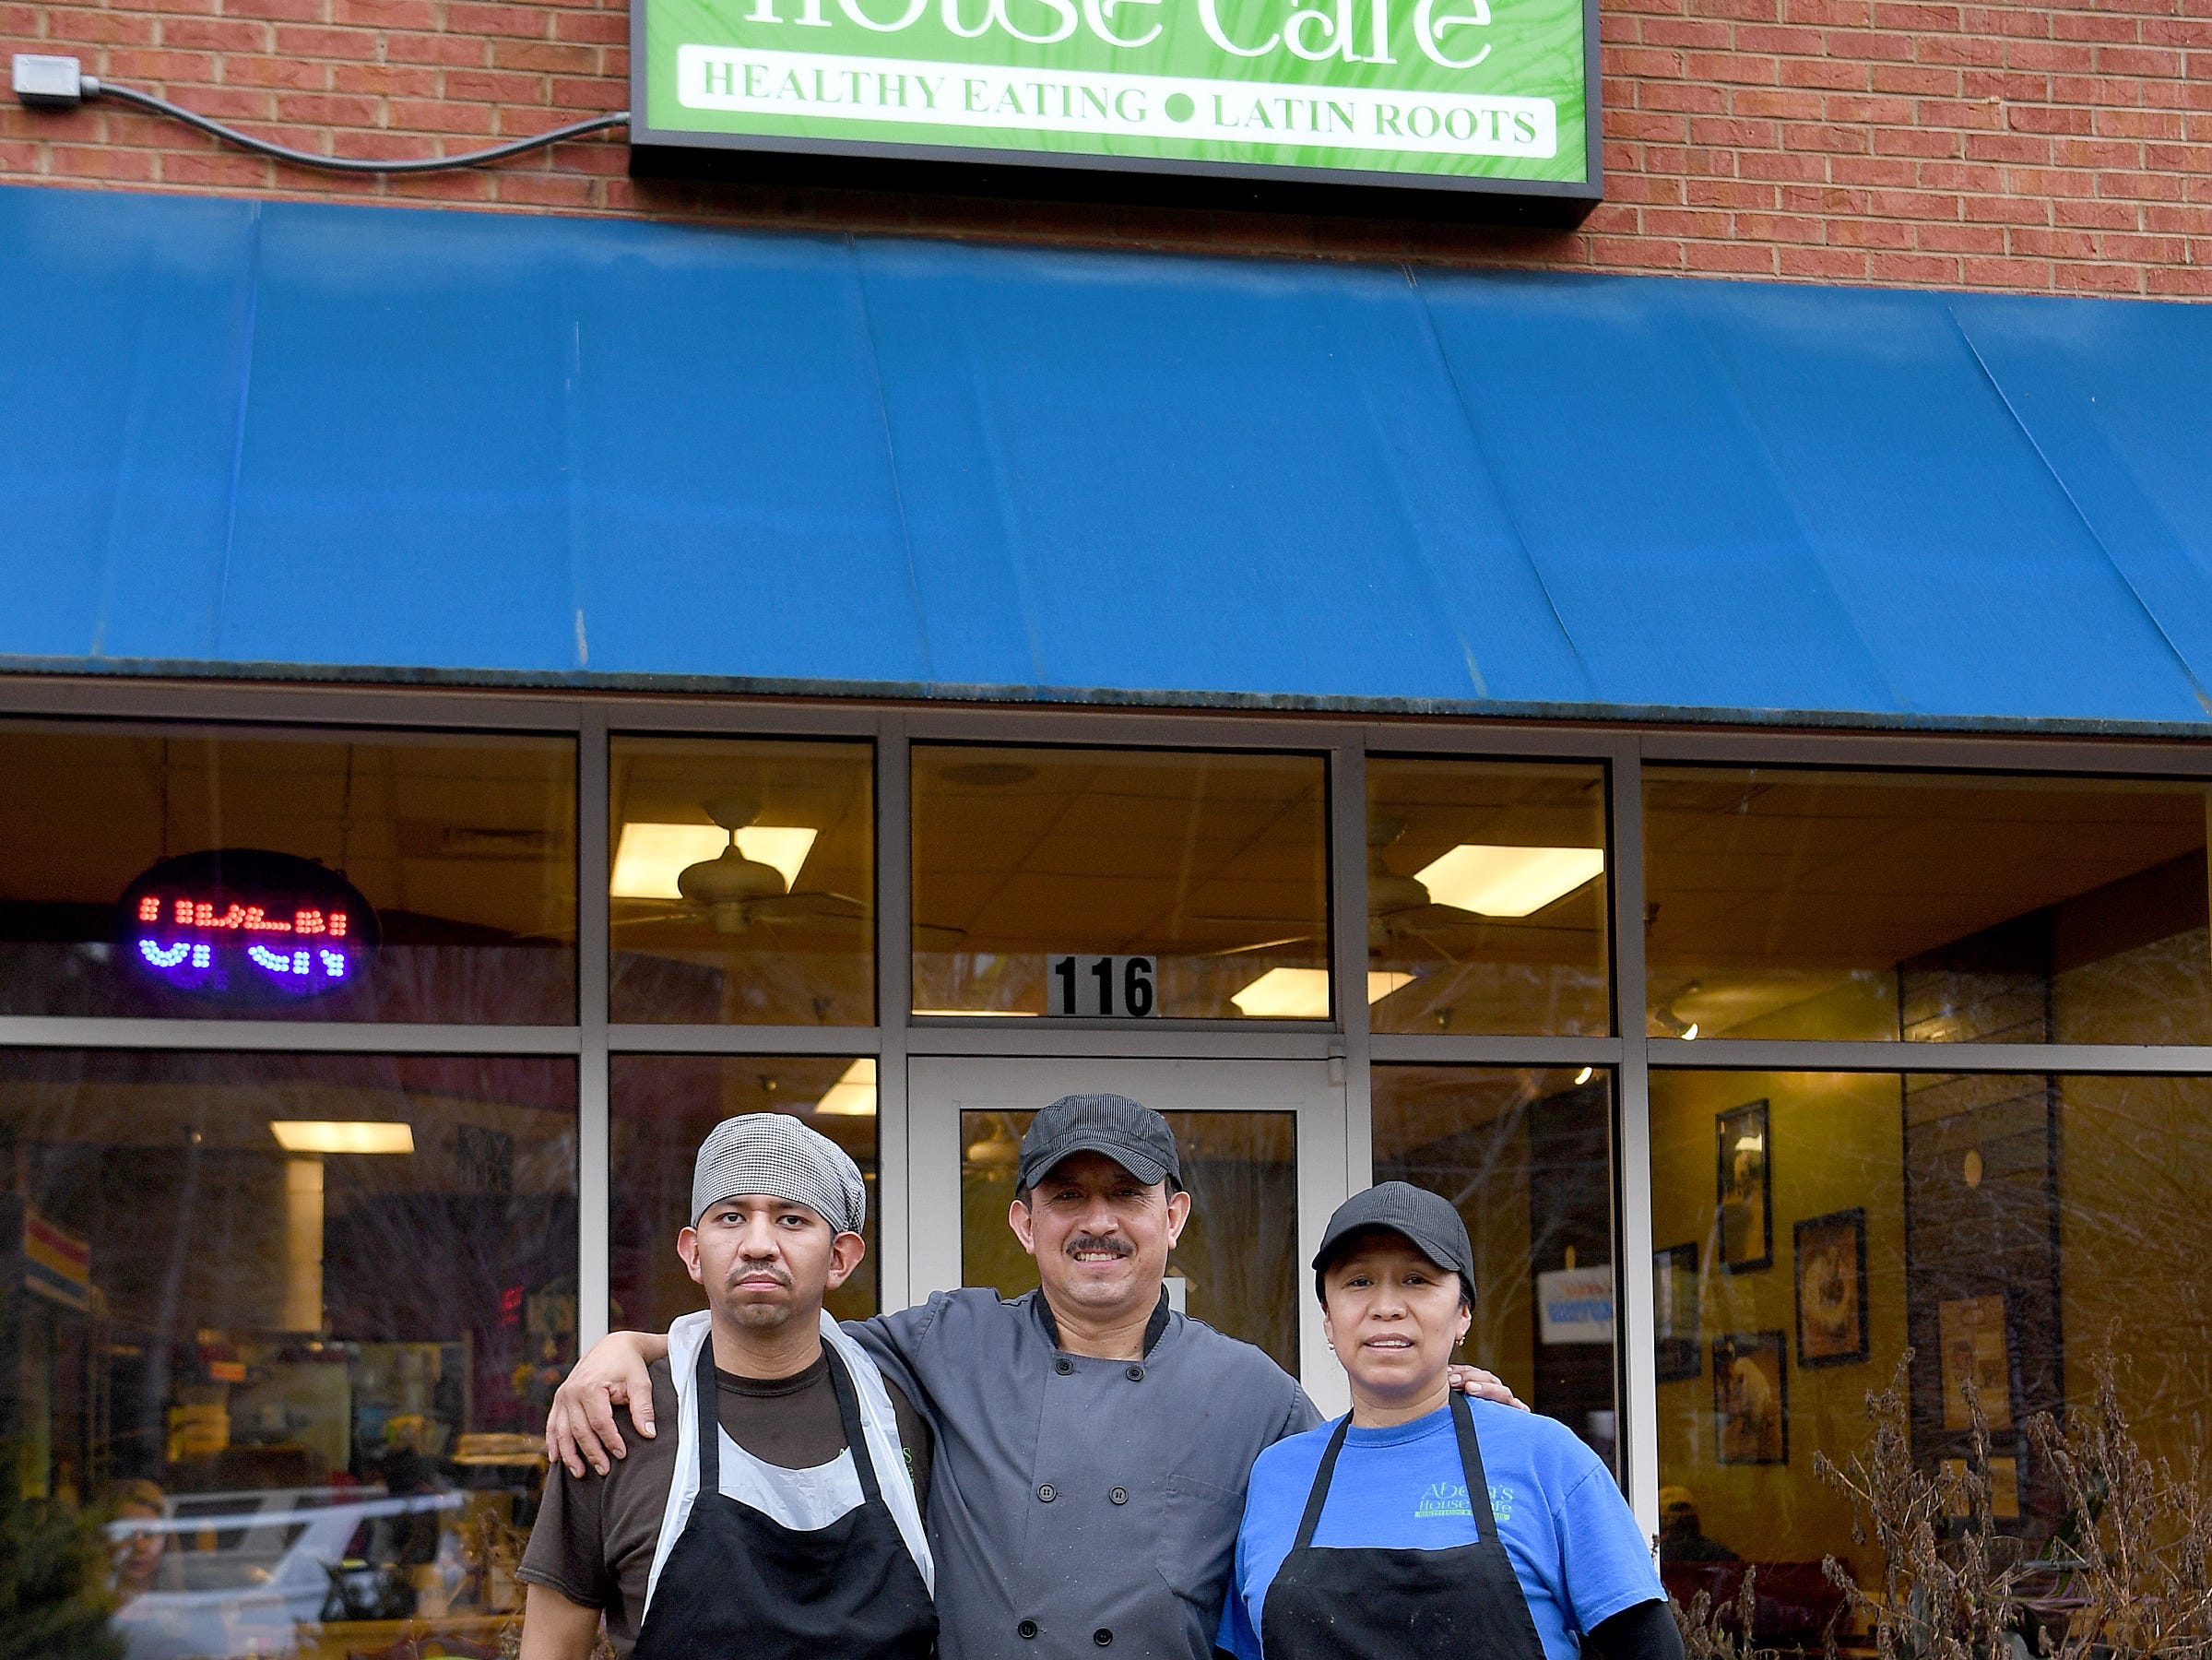 Abeja's House Cafe owners Rafael Lopez, his wife Martha and his son, Rafael, Jr. pose outside of the restaurant on Nov. 30, 2018.